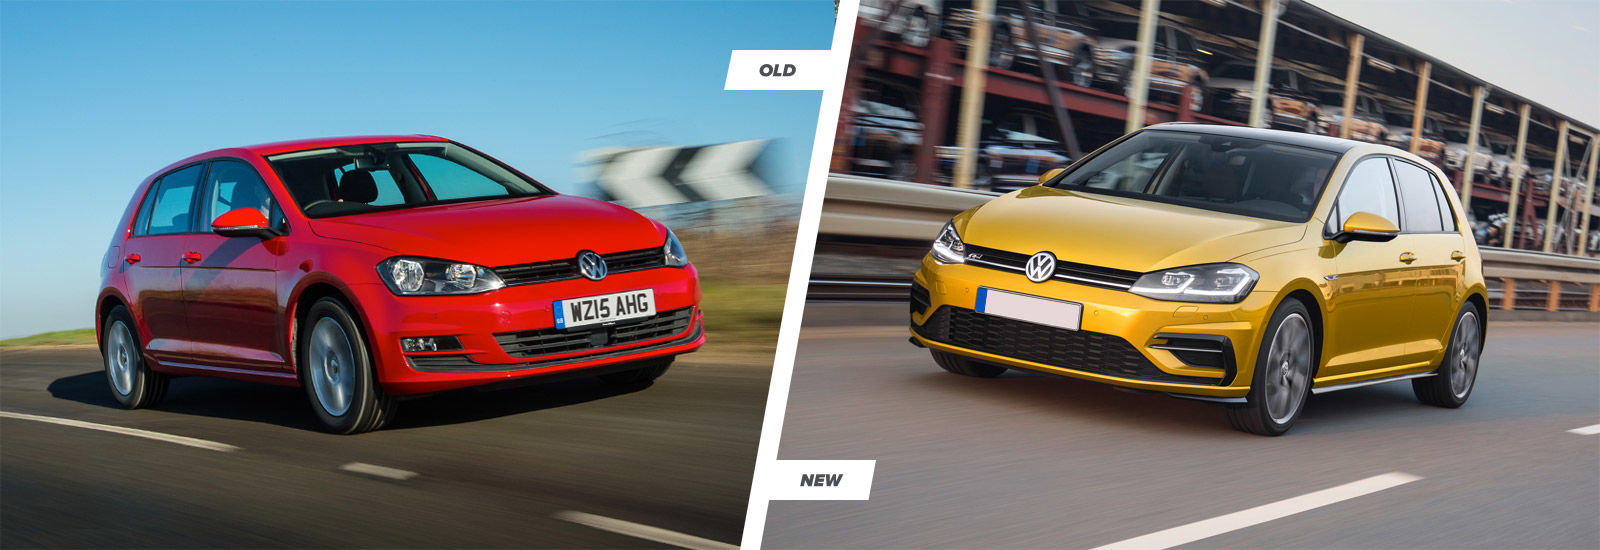 vw-golf-old-vs-new-driving.jpg